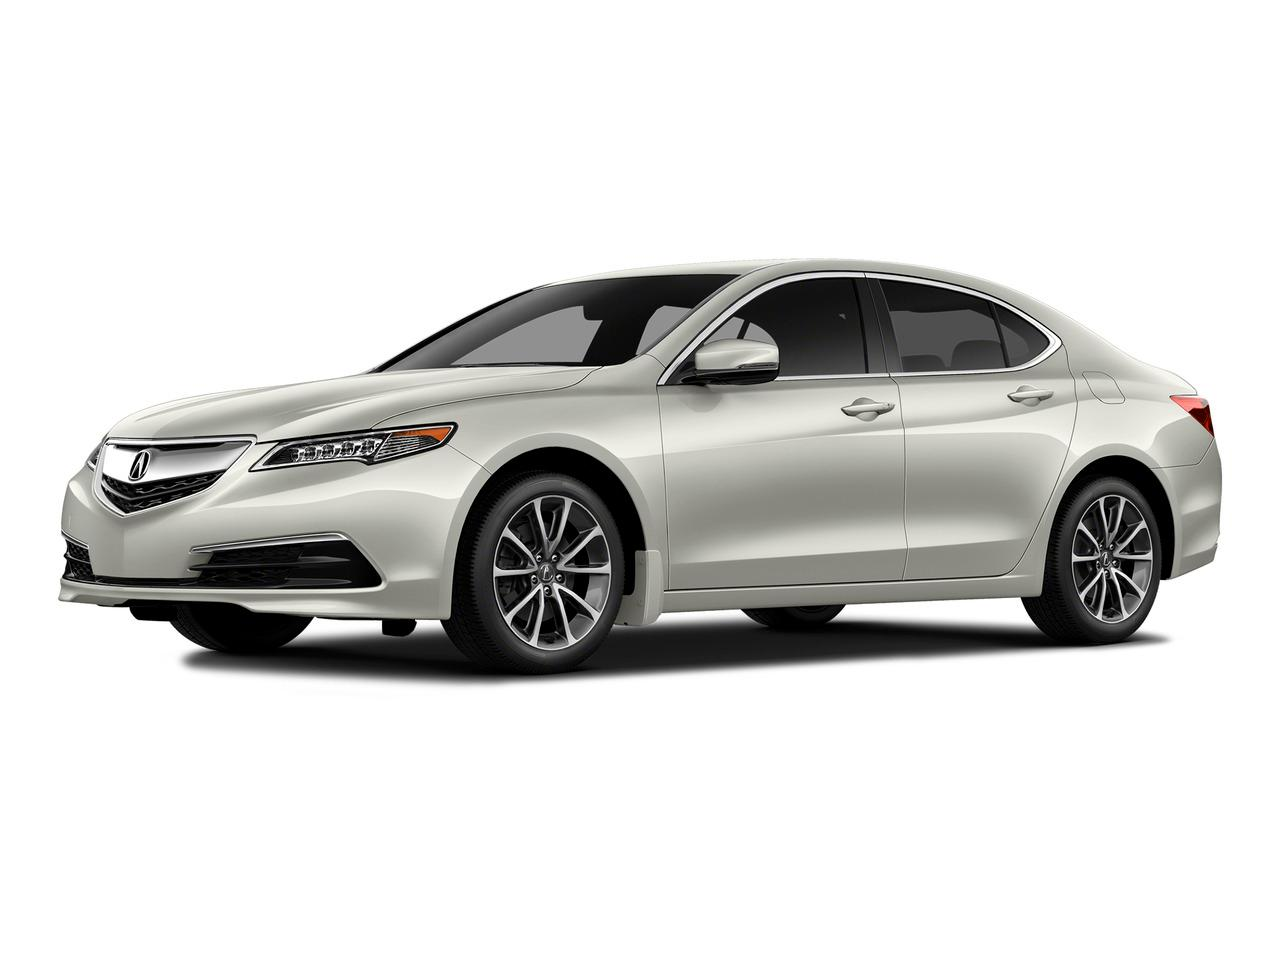 Used Acura Tlx Vehicles For Sale In Waterbury Ct Loehmann Blasius Chevrolet